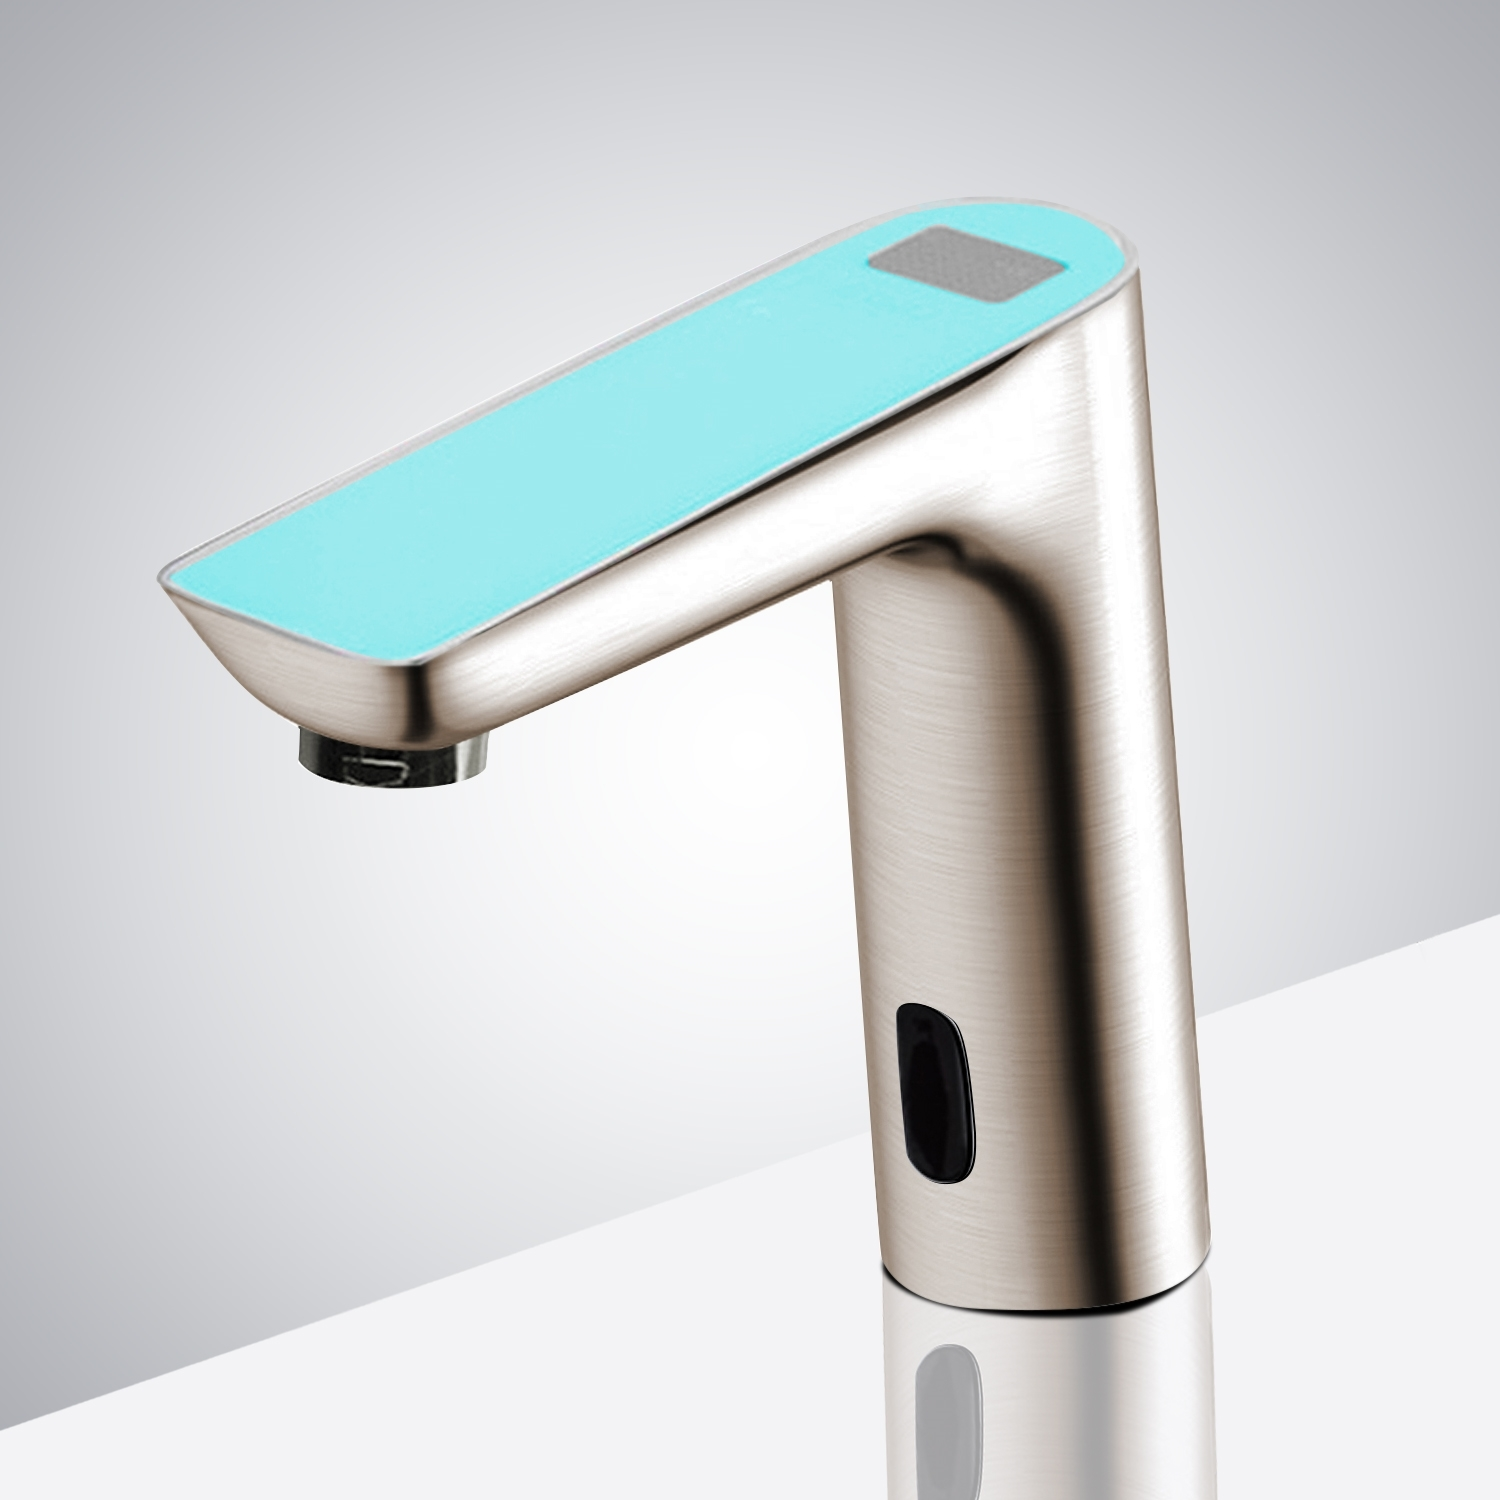 Superieur Digital Display Bathroom Sensor Faucet Automatic Touchless Faucet Larger  Photo Email A Friend